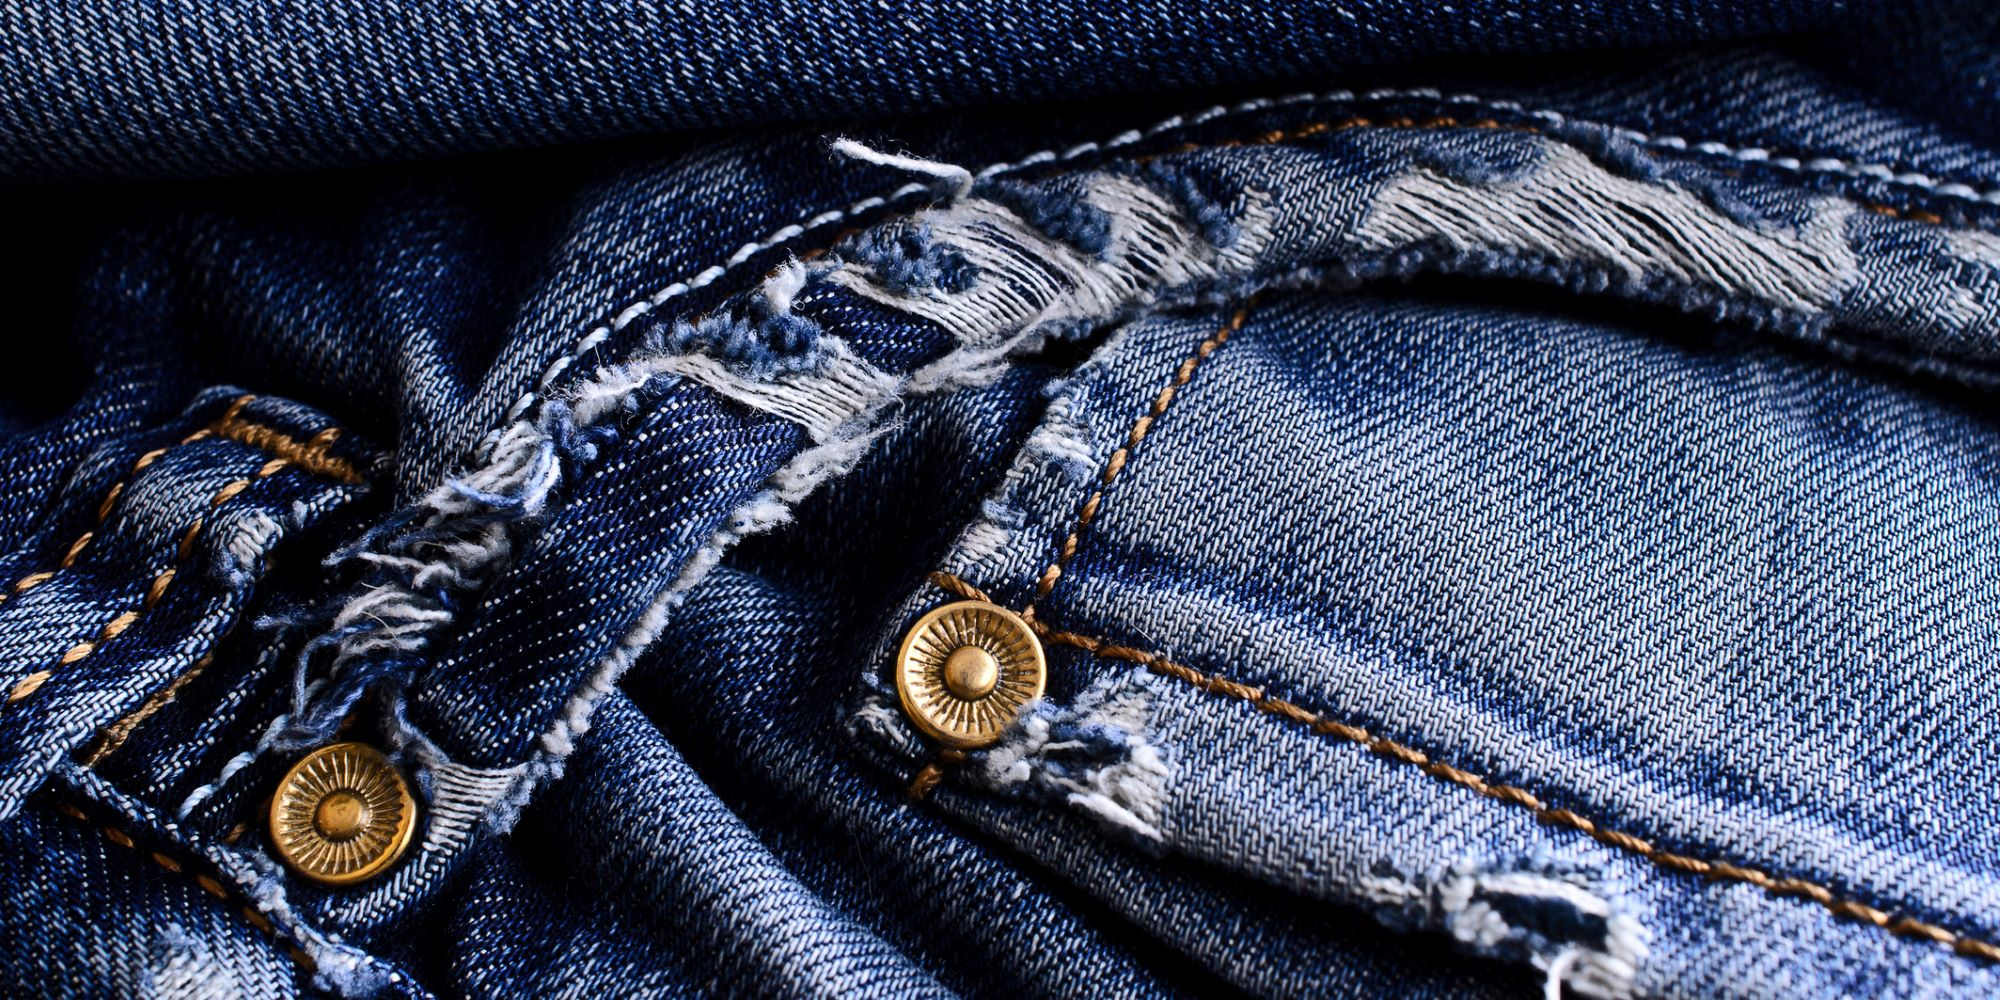 Designers have adapted the blue jean from being purely rugged workwear to a wardrobe classic, while keeping consumers' preferences in mind.